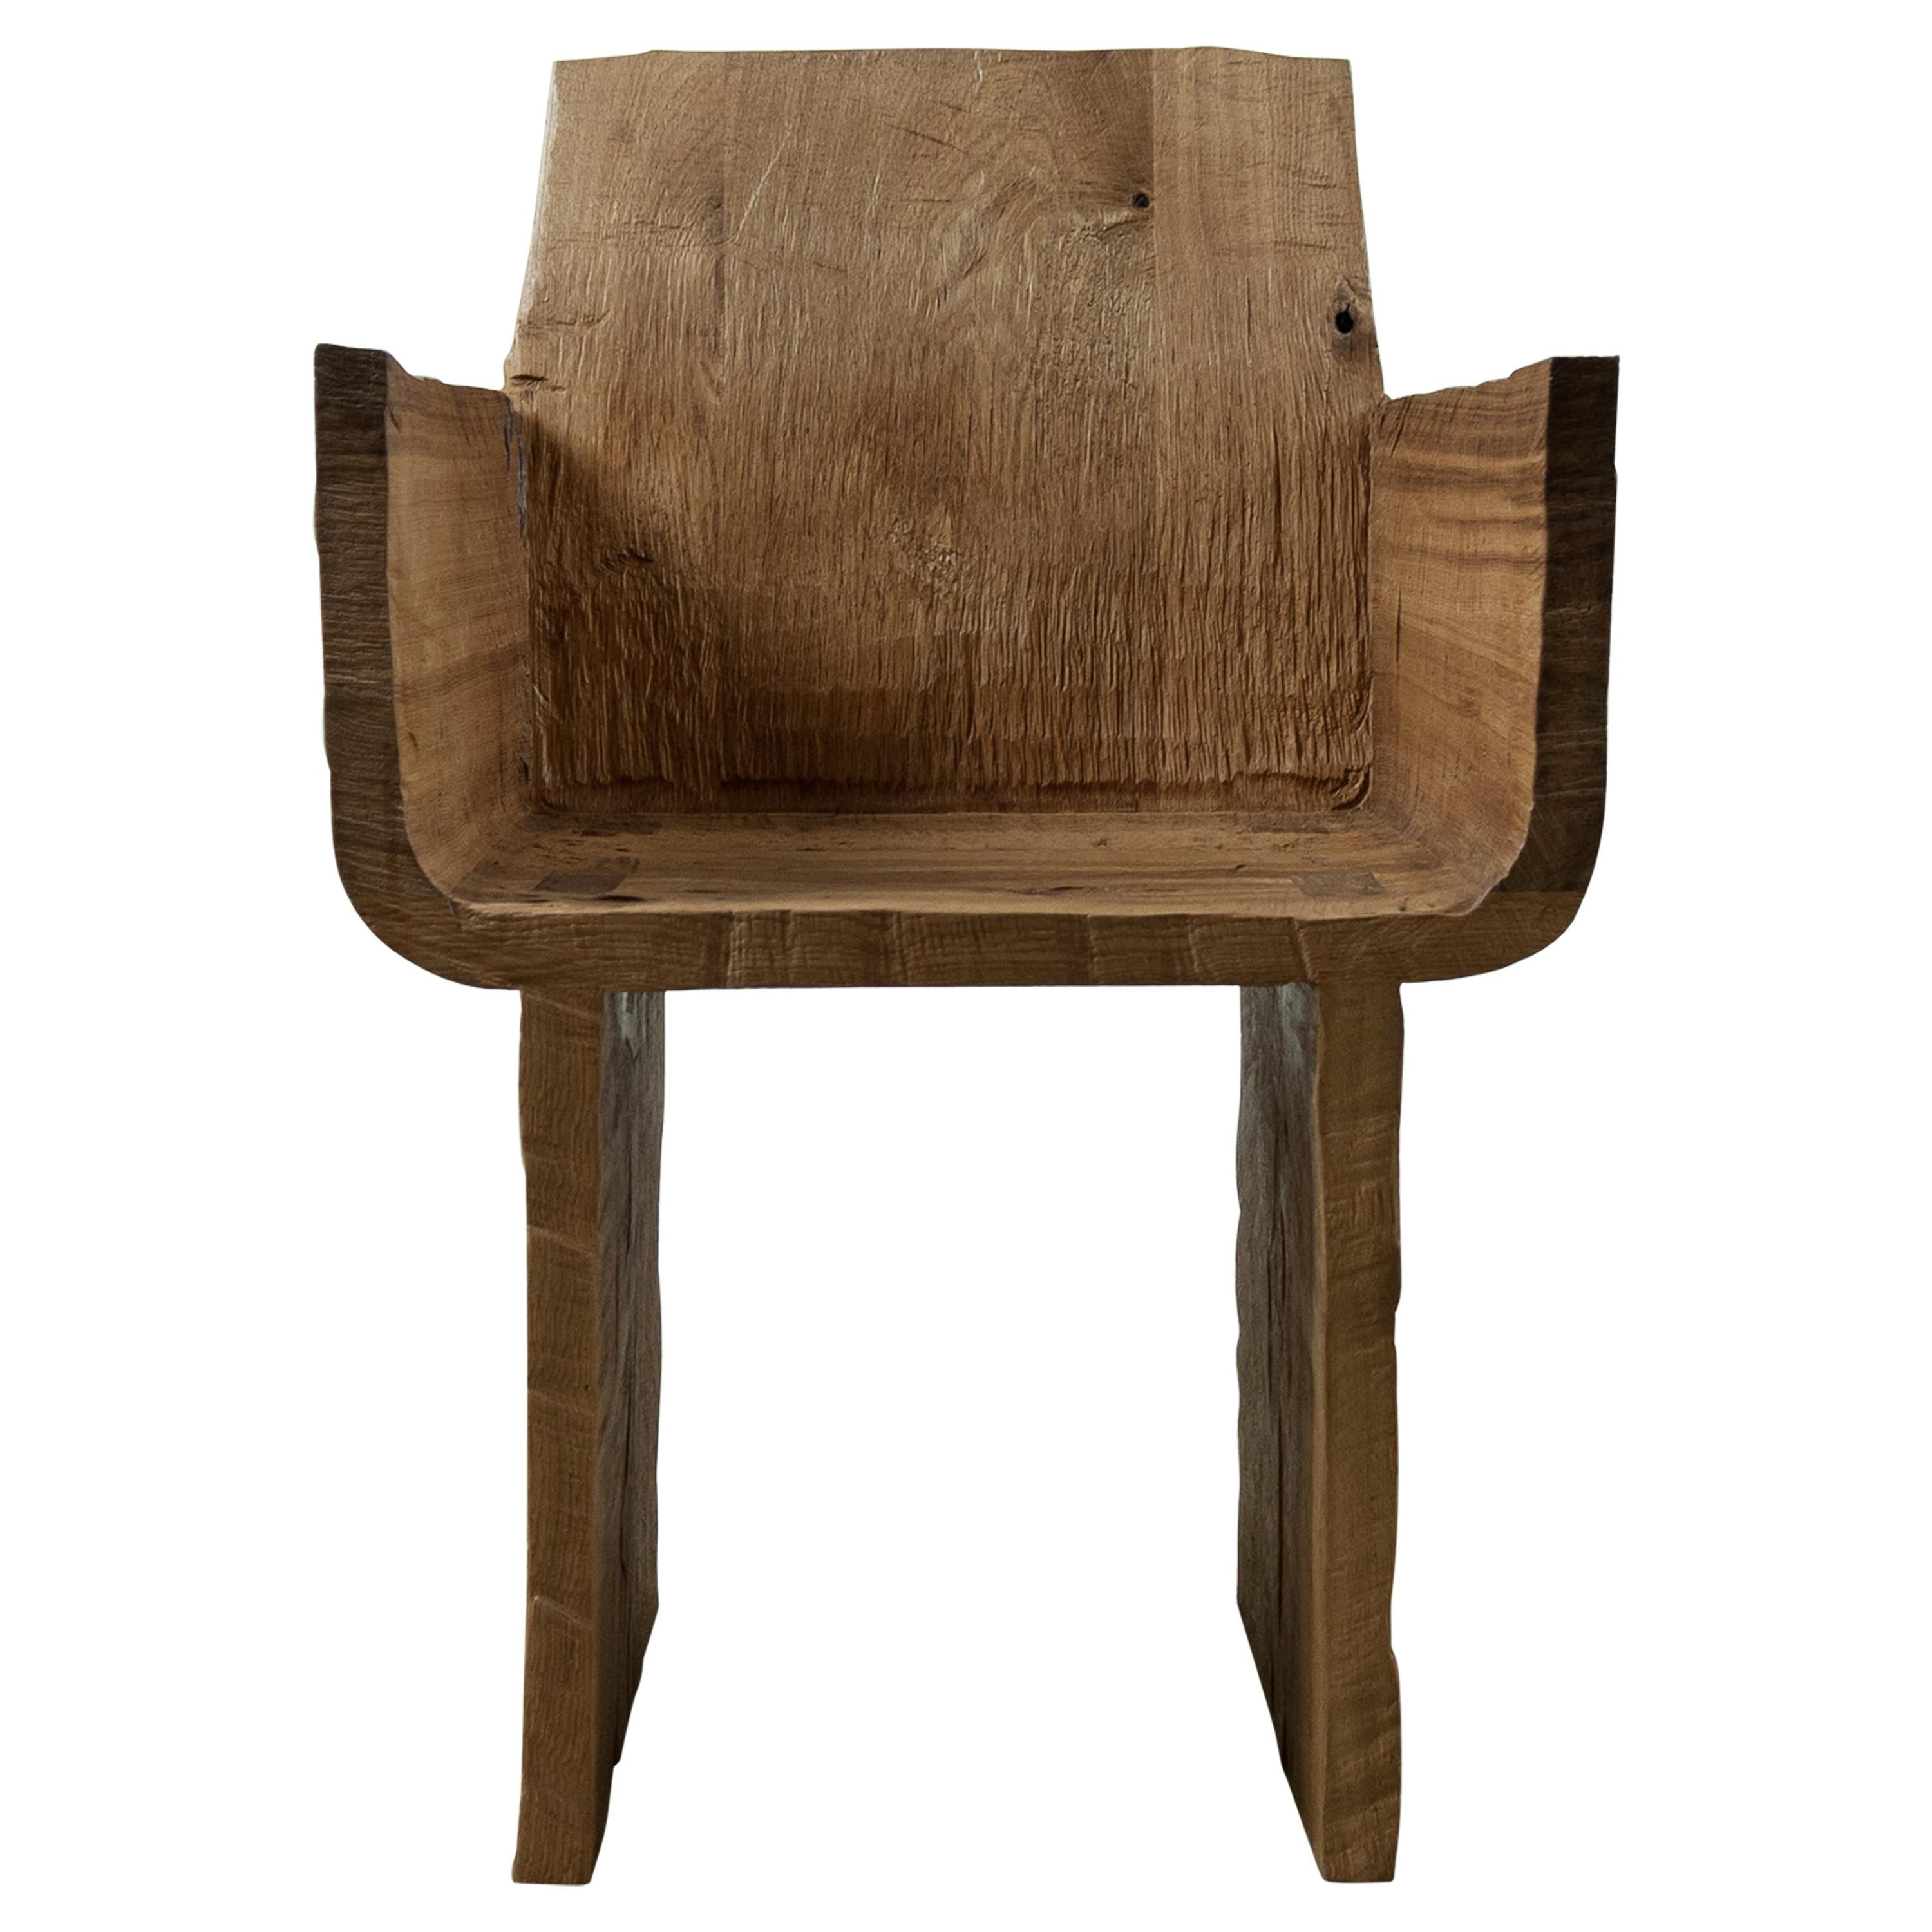 Sculpted Armchair in Solid Oak Wood